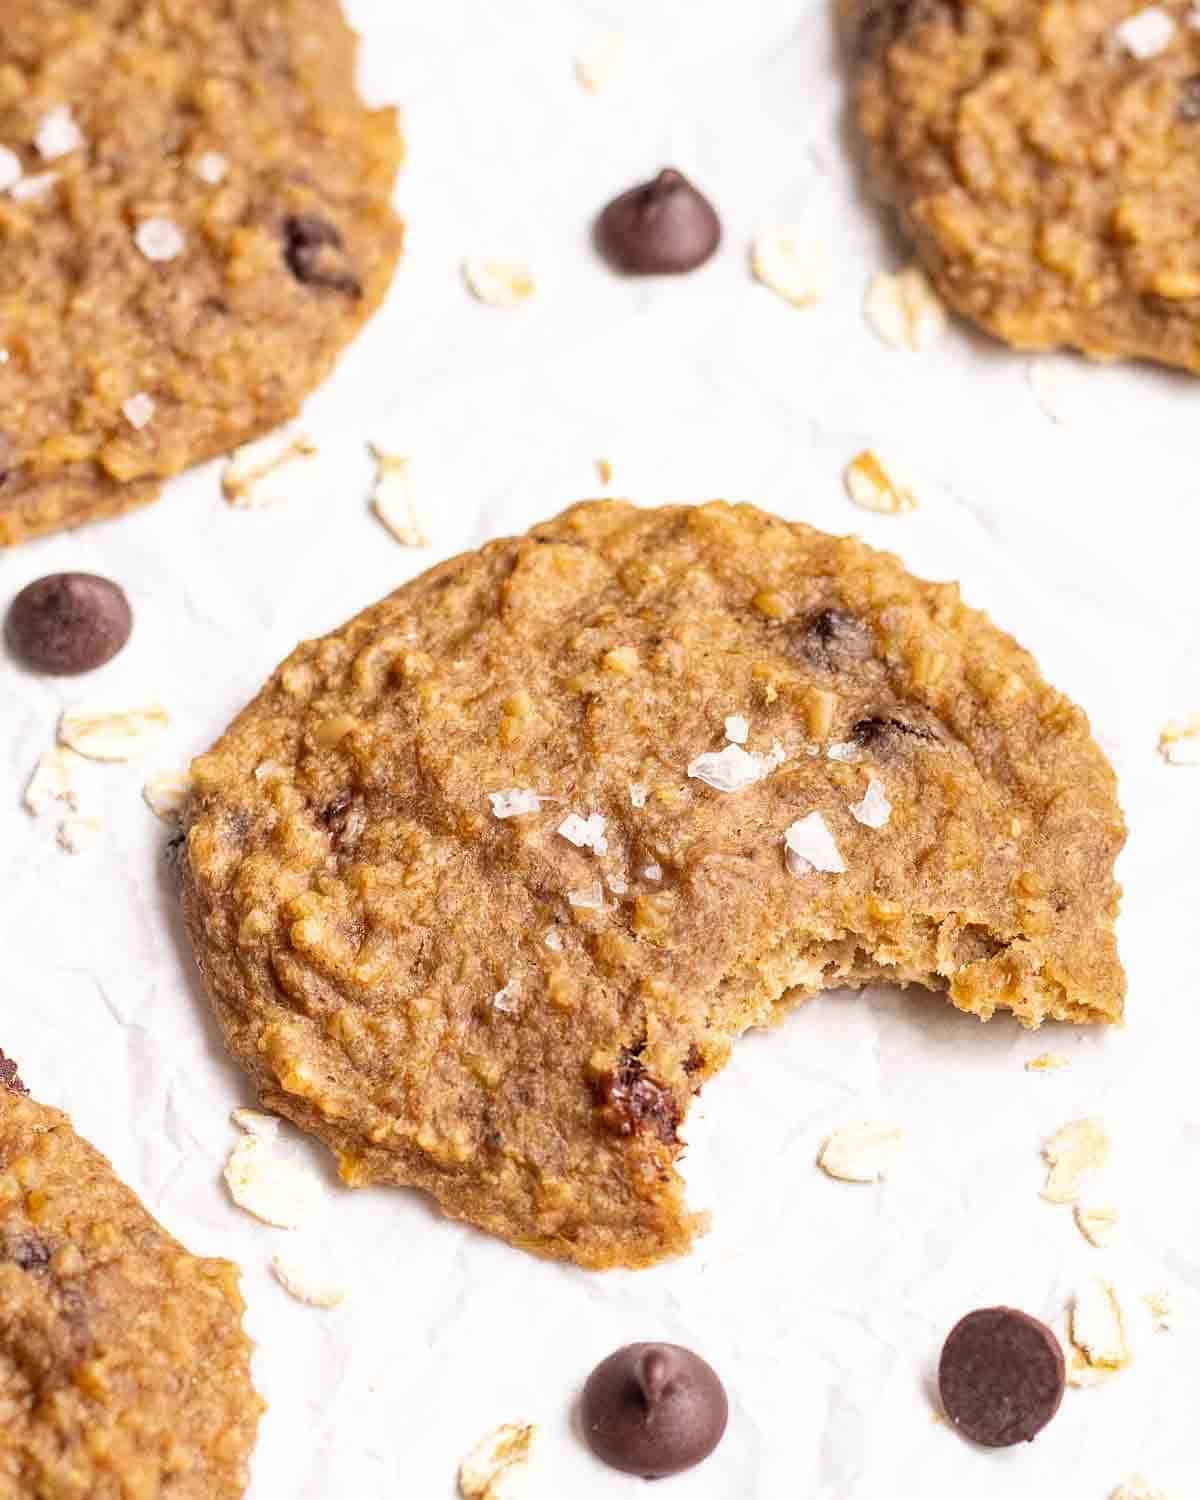 A cookie with a bite taken out on a parchment paper with oats and chocolate chips in the background.